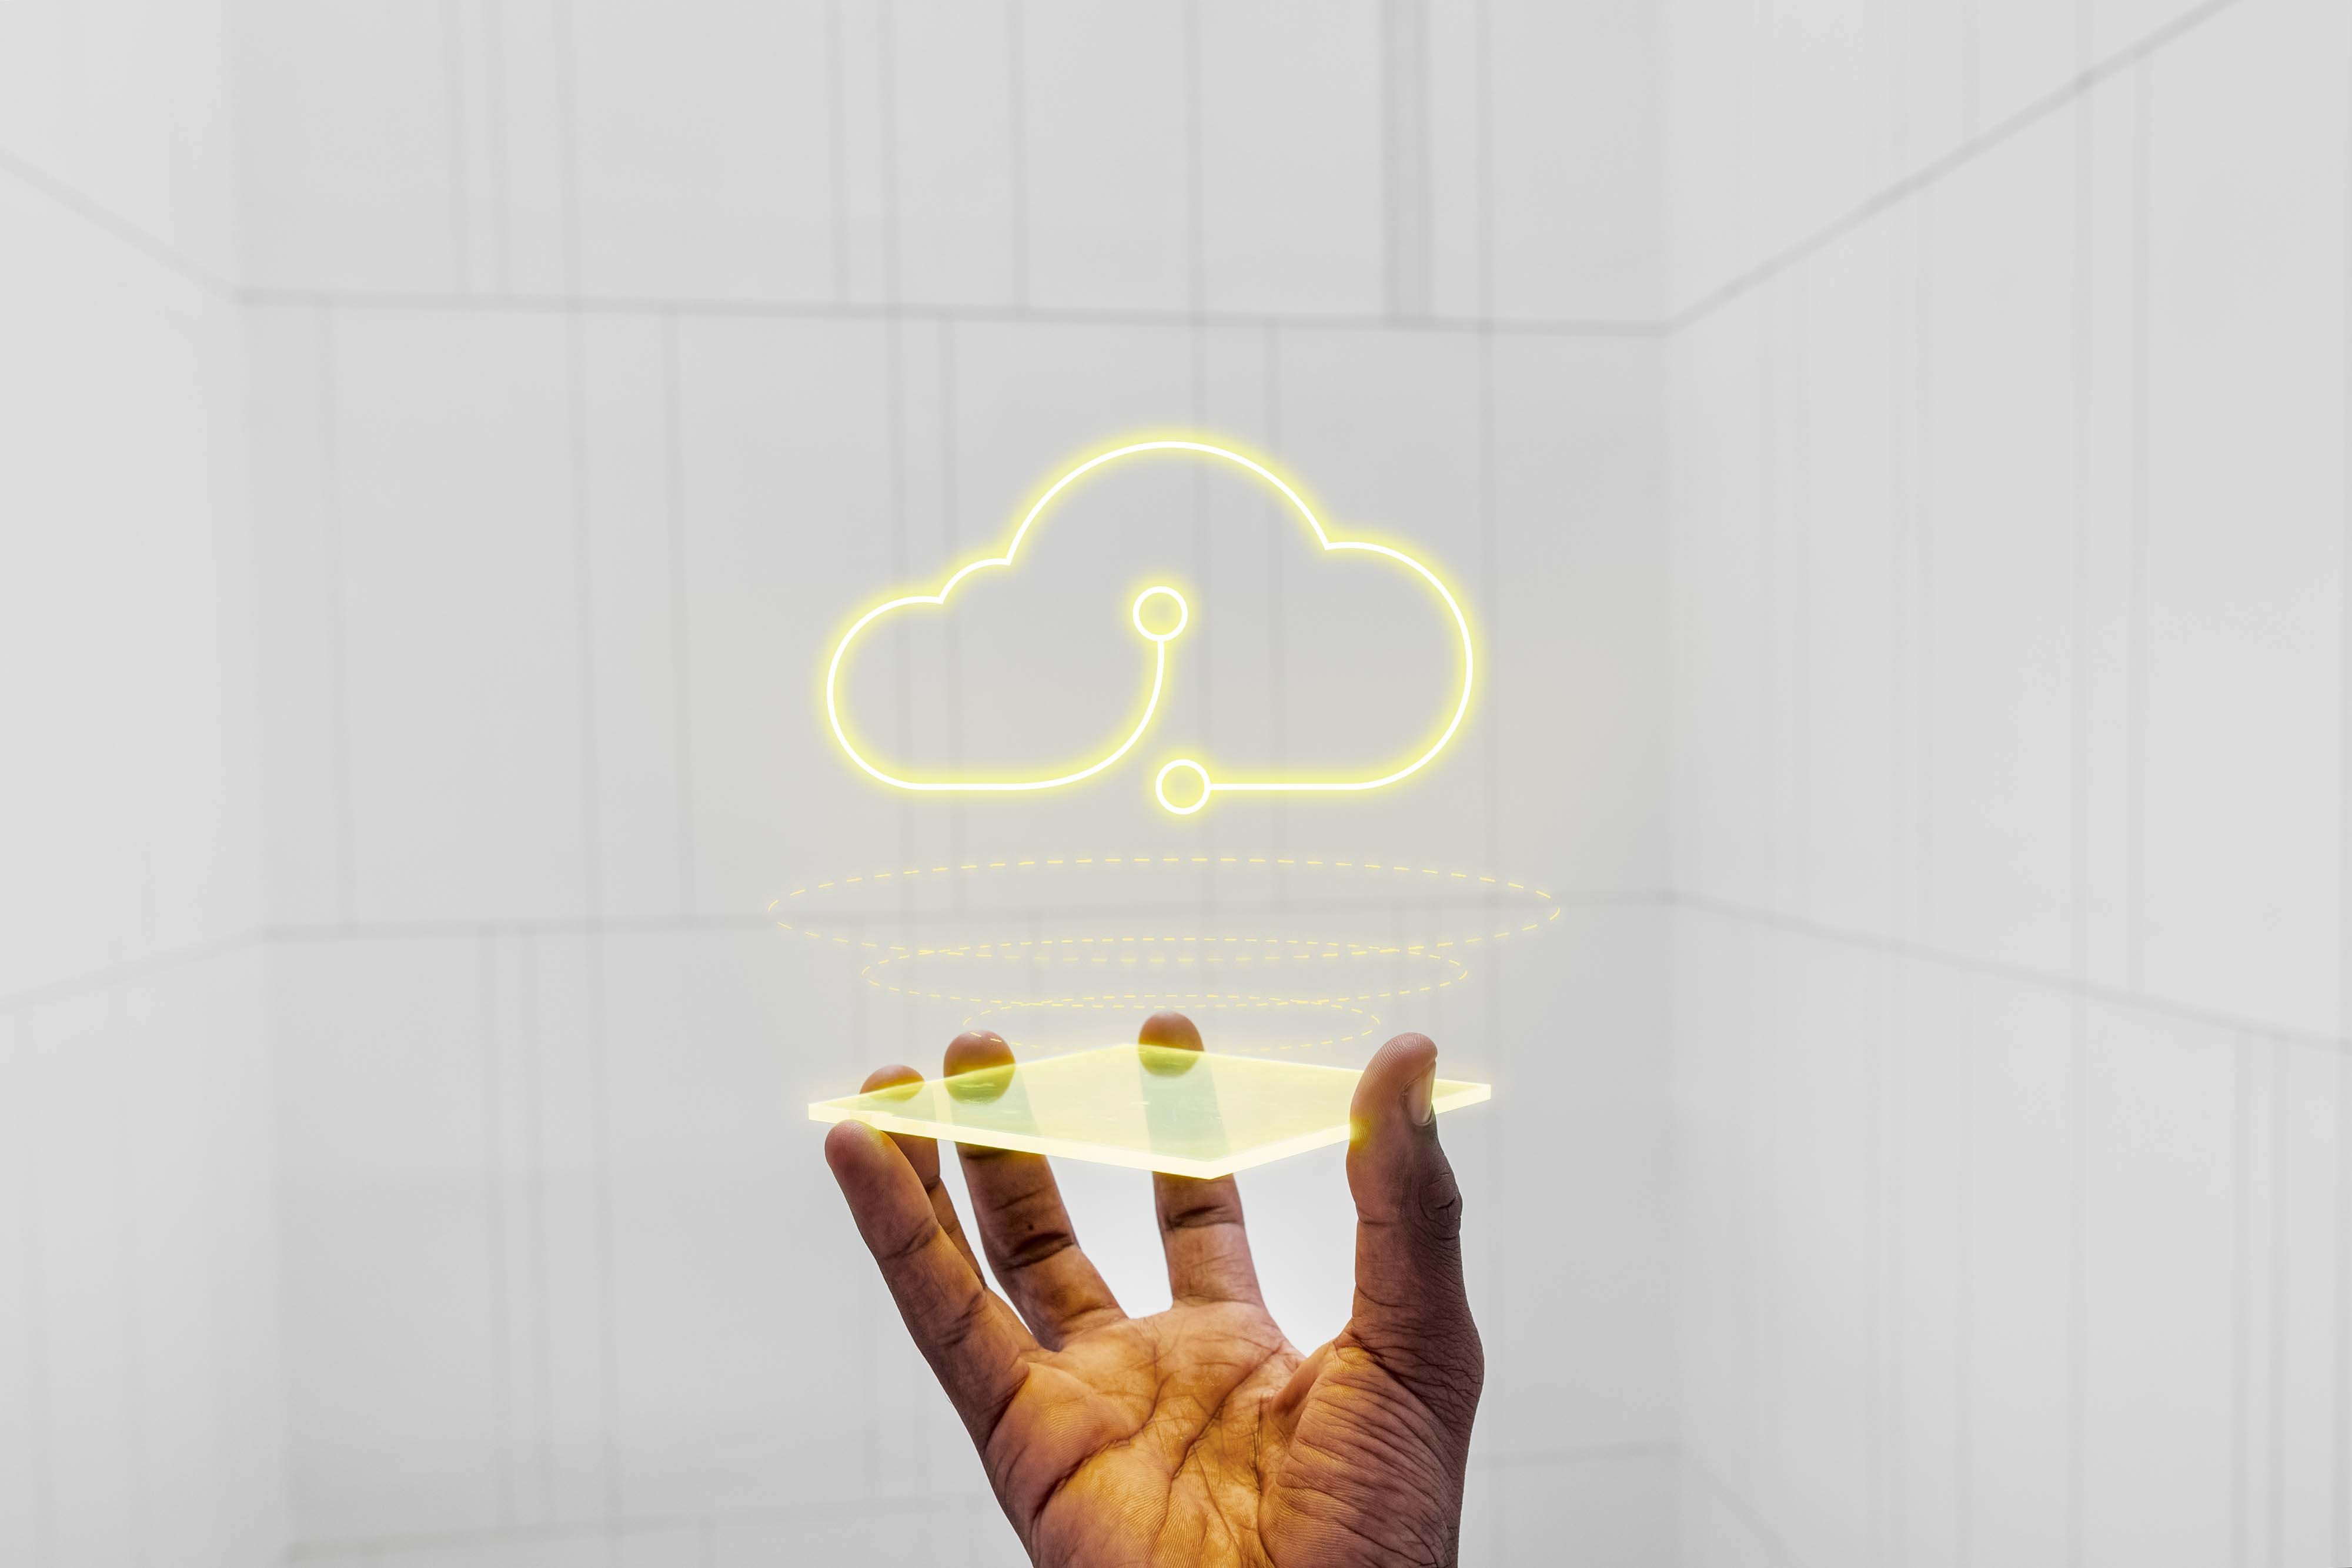 Meeting the benefits of moving to the cloud